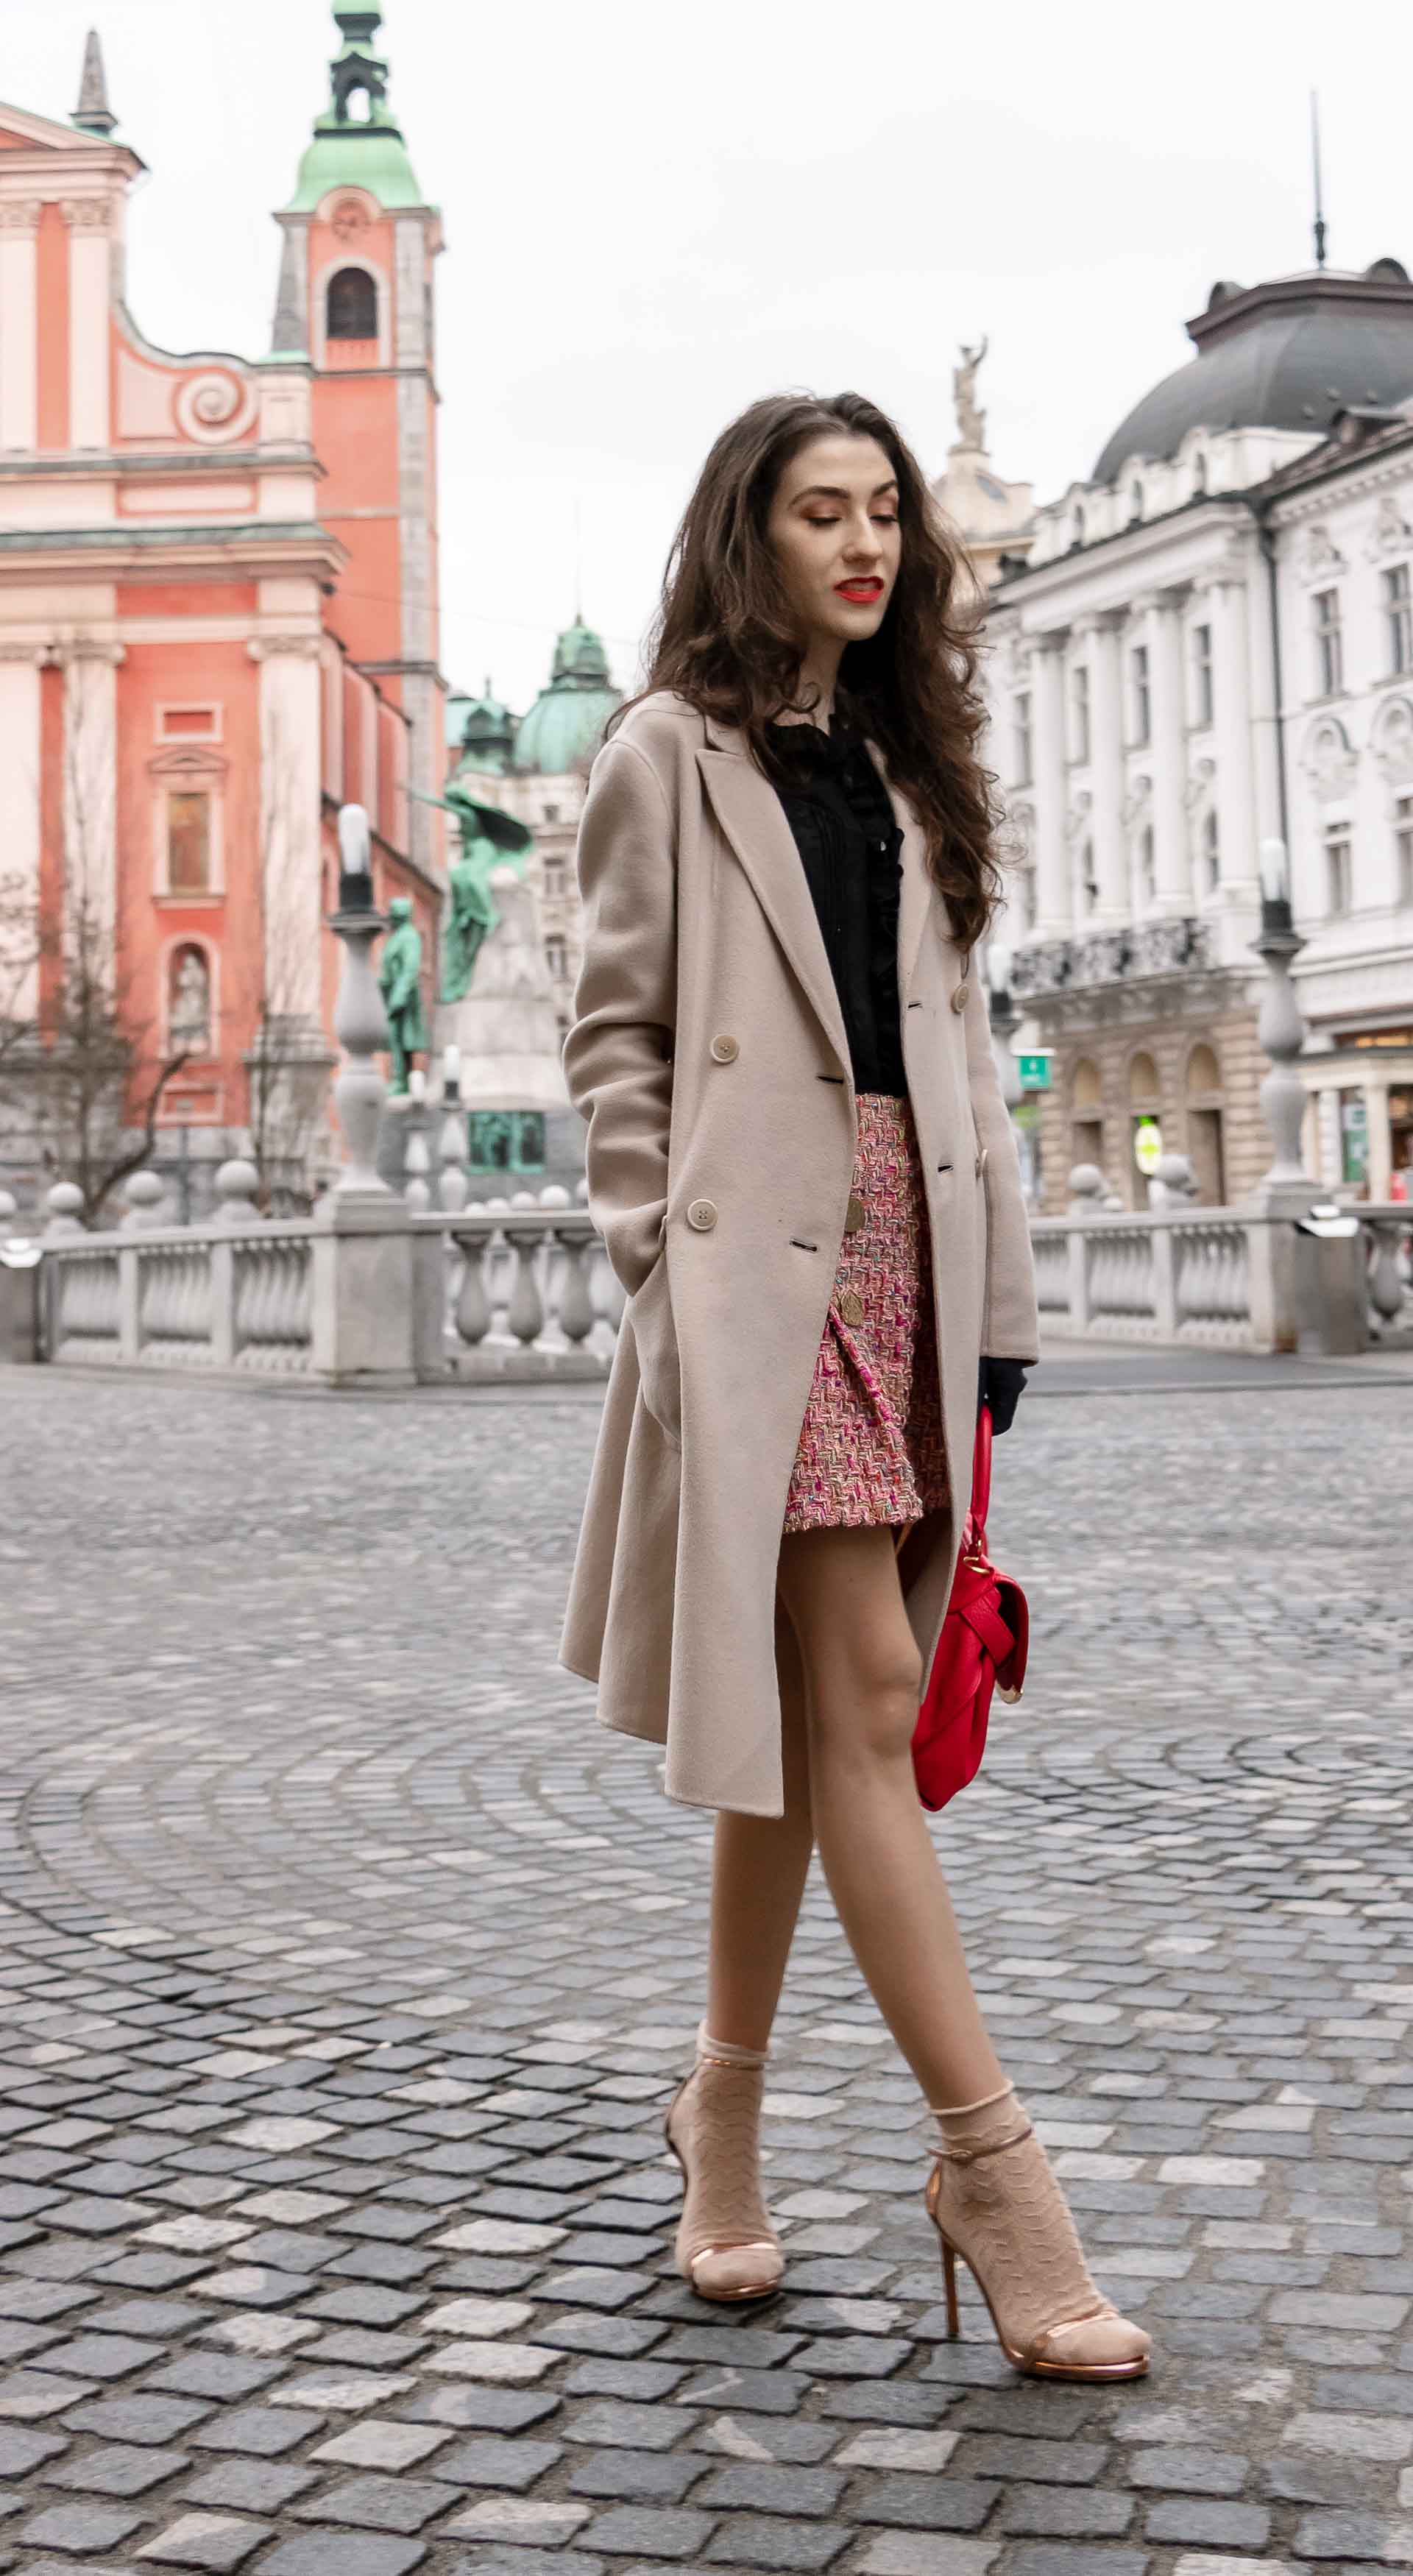 Fashion Blogger Veronika Lipar of Brunette from Wall Street dressed in bronze socks and sandals from Stuart Weitzman, tweed Storets mini skirt, black blouse, off white Weekend Maxmara coat while walking down the street in Ljubljana